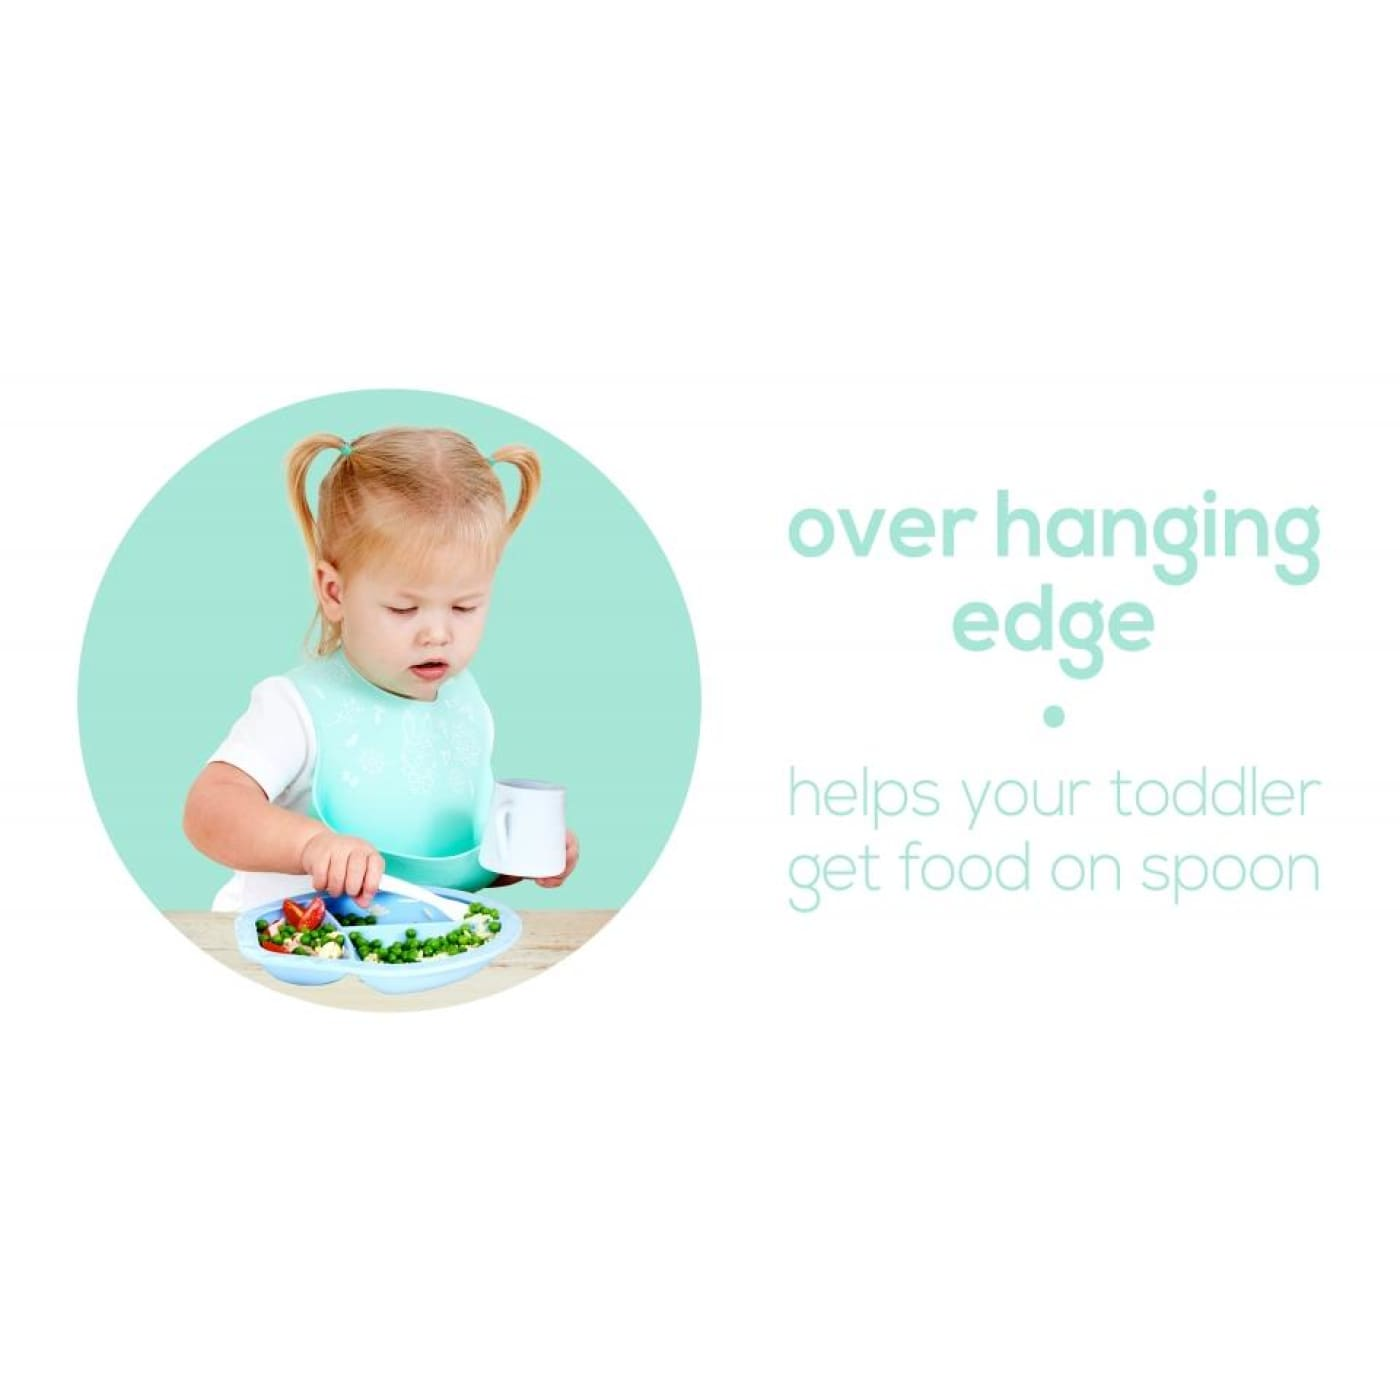 Weanmeister Scoopsy Plate - Teal Blue - NURSING & FEEDING - CUTLERY/PLATES/BOWLS/TOYS